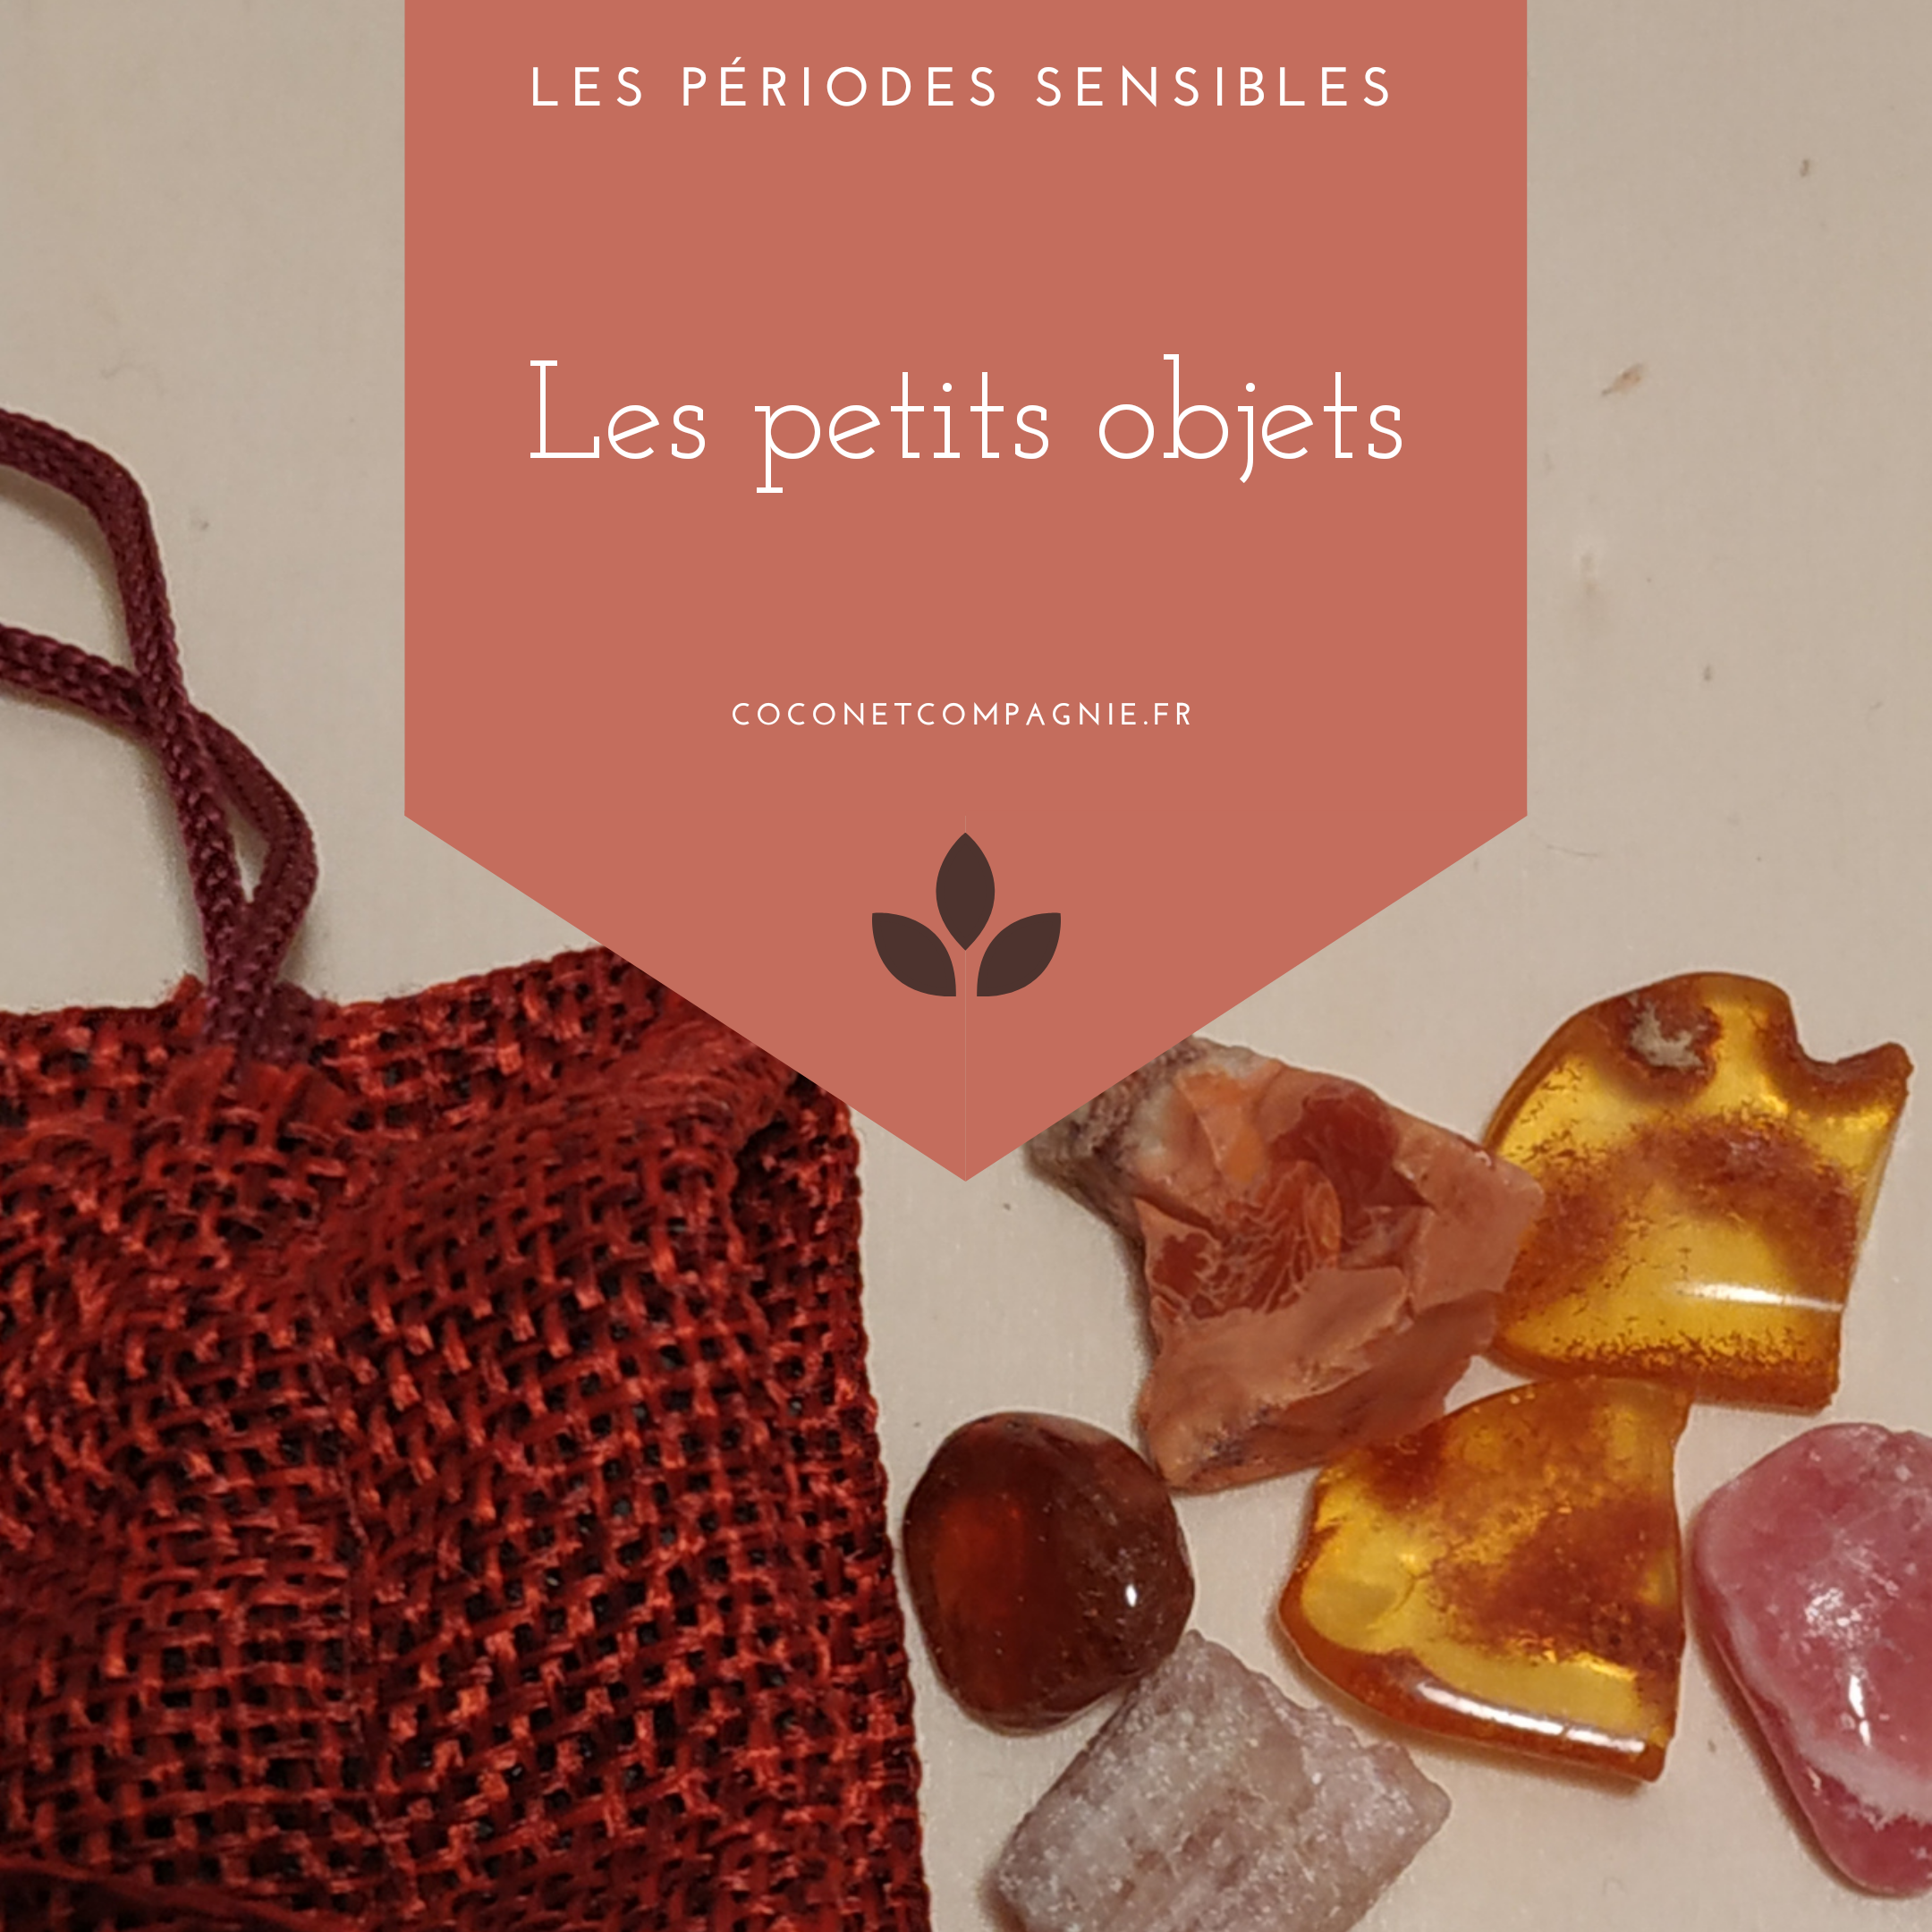 periode_sensible_petits_objets_cocon_compagnie